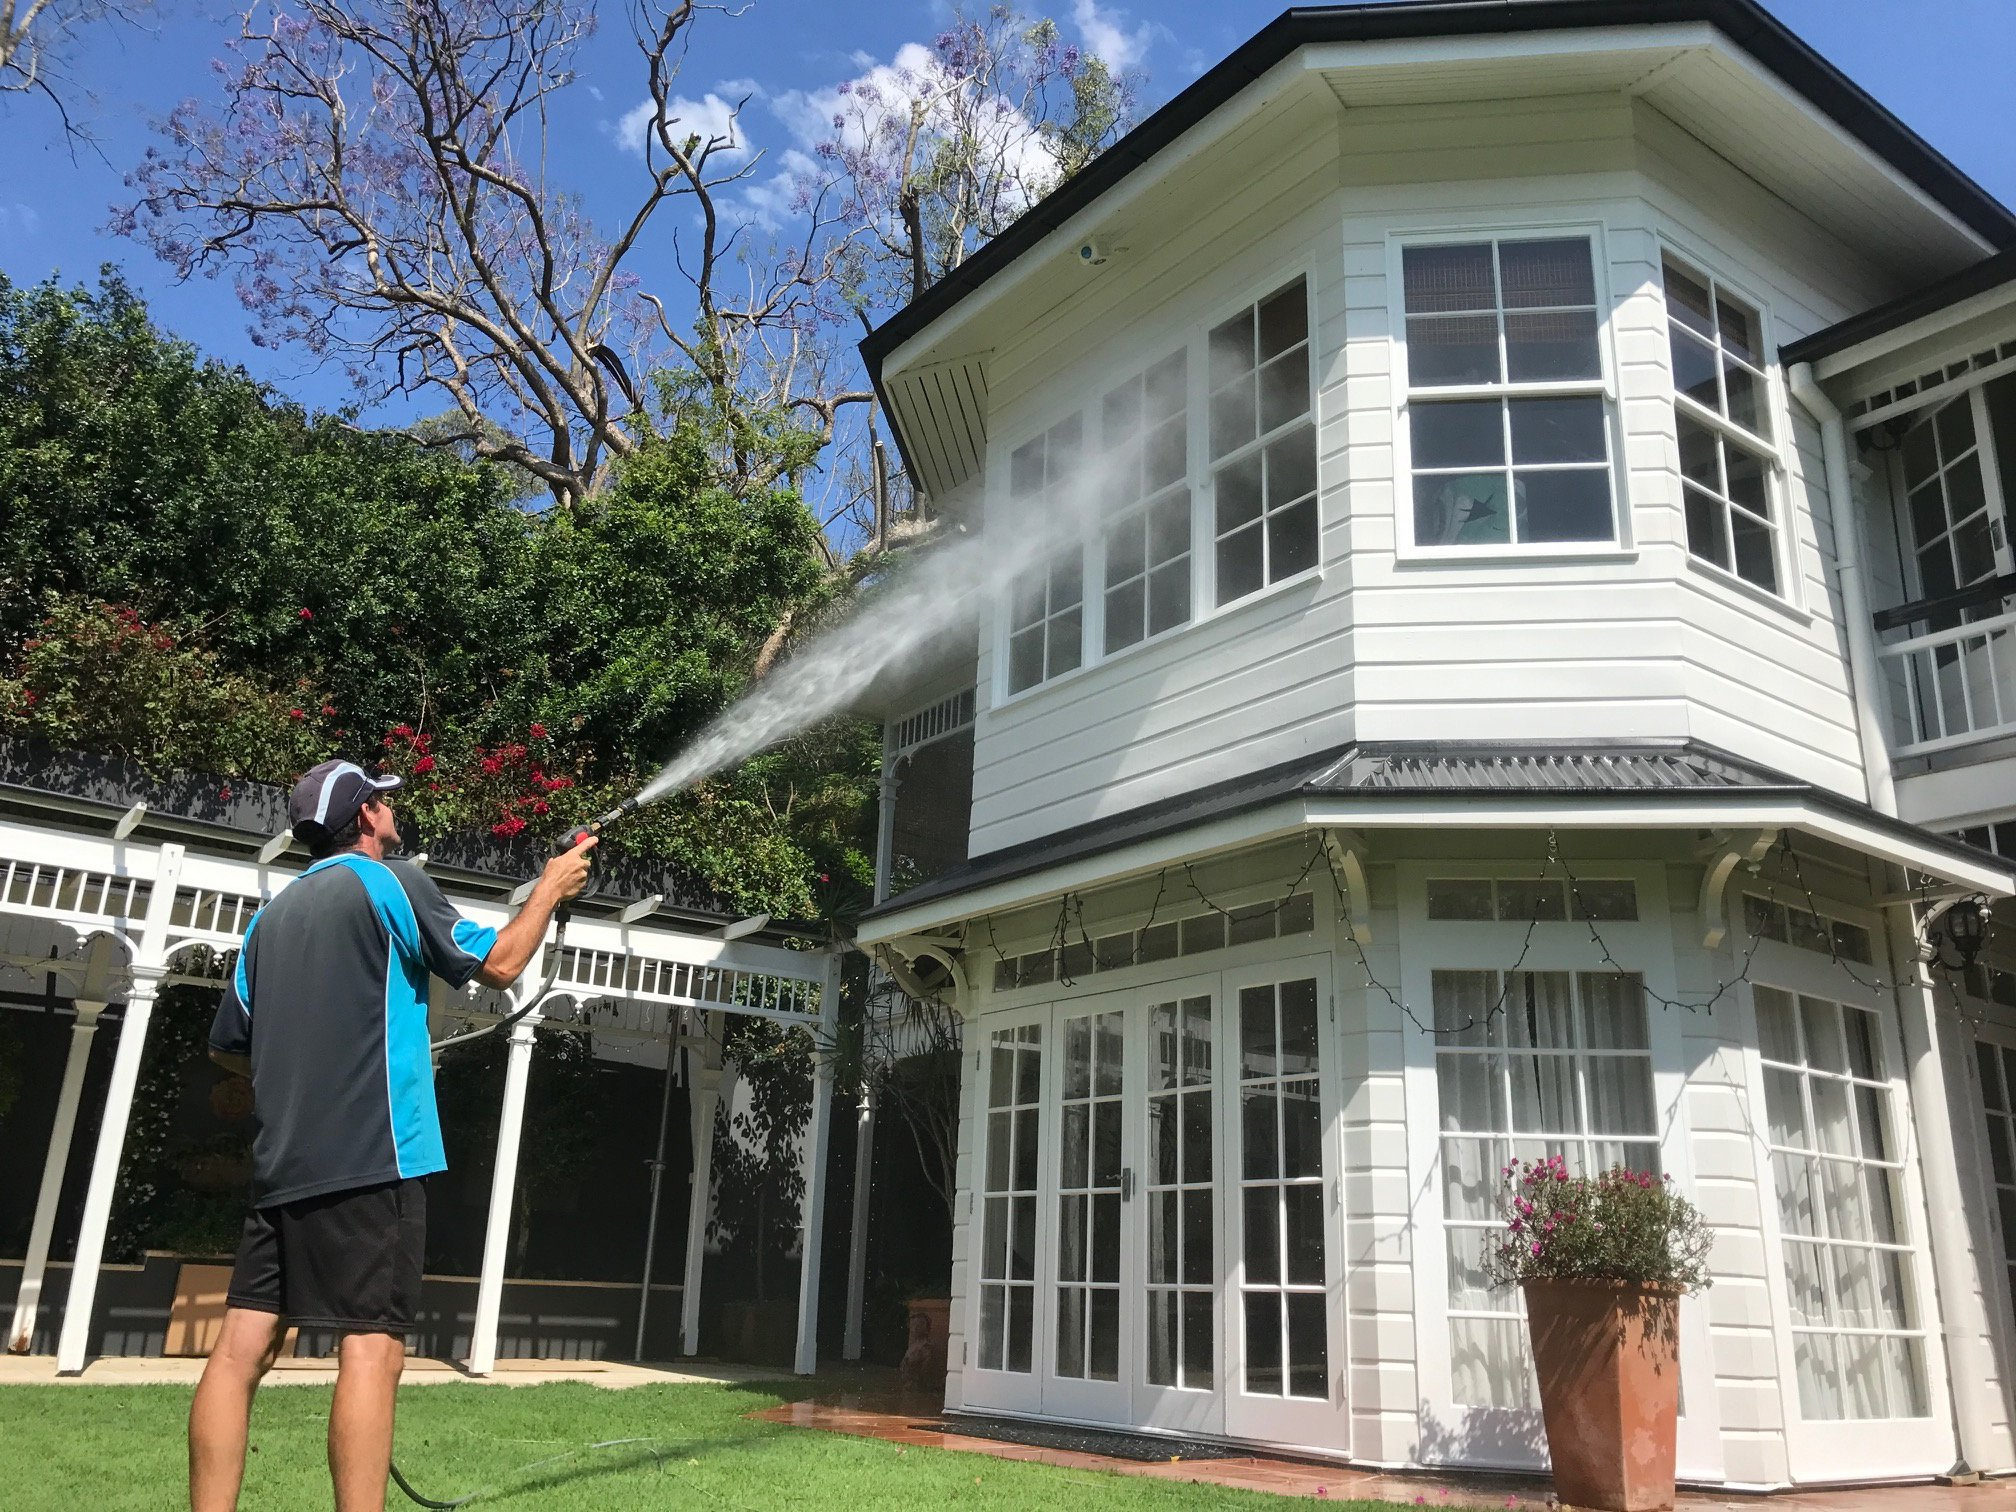 Eagle Farm Roof washing services